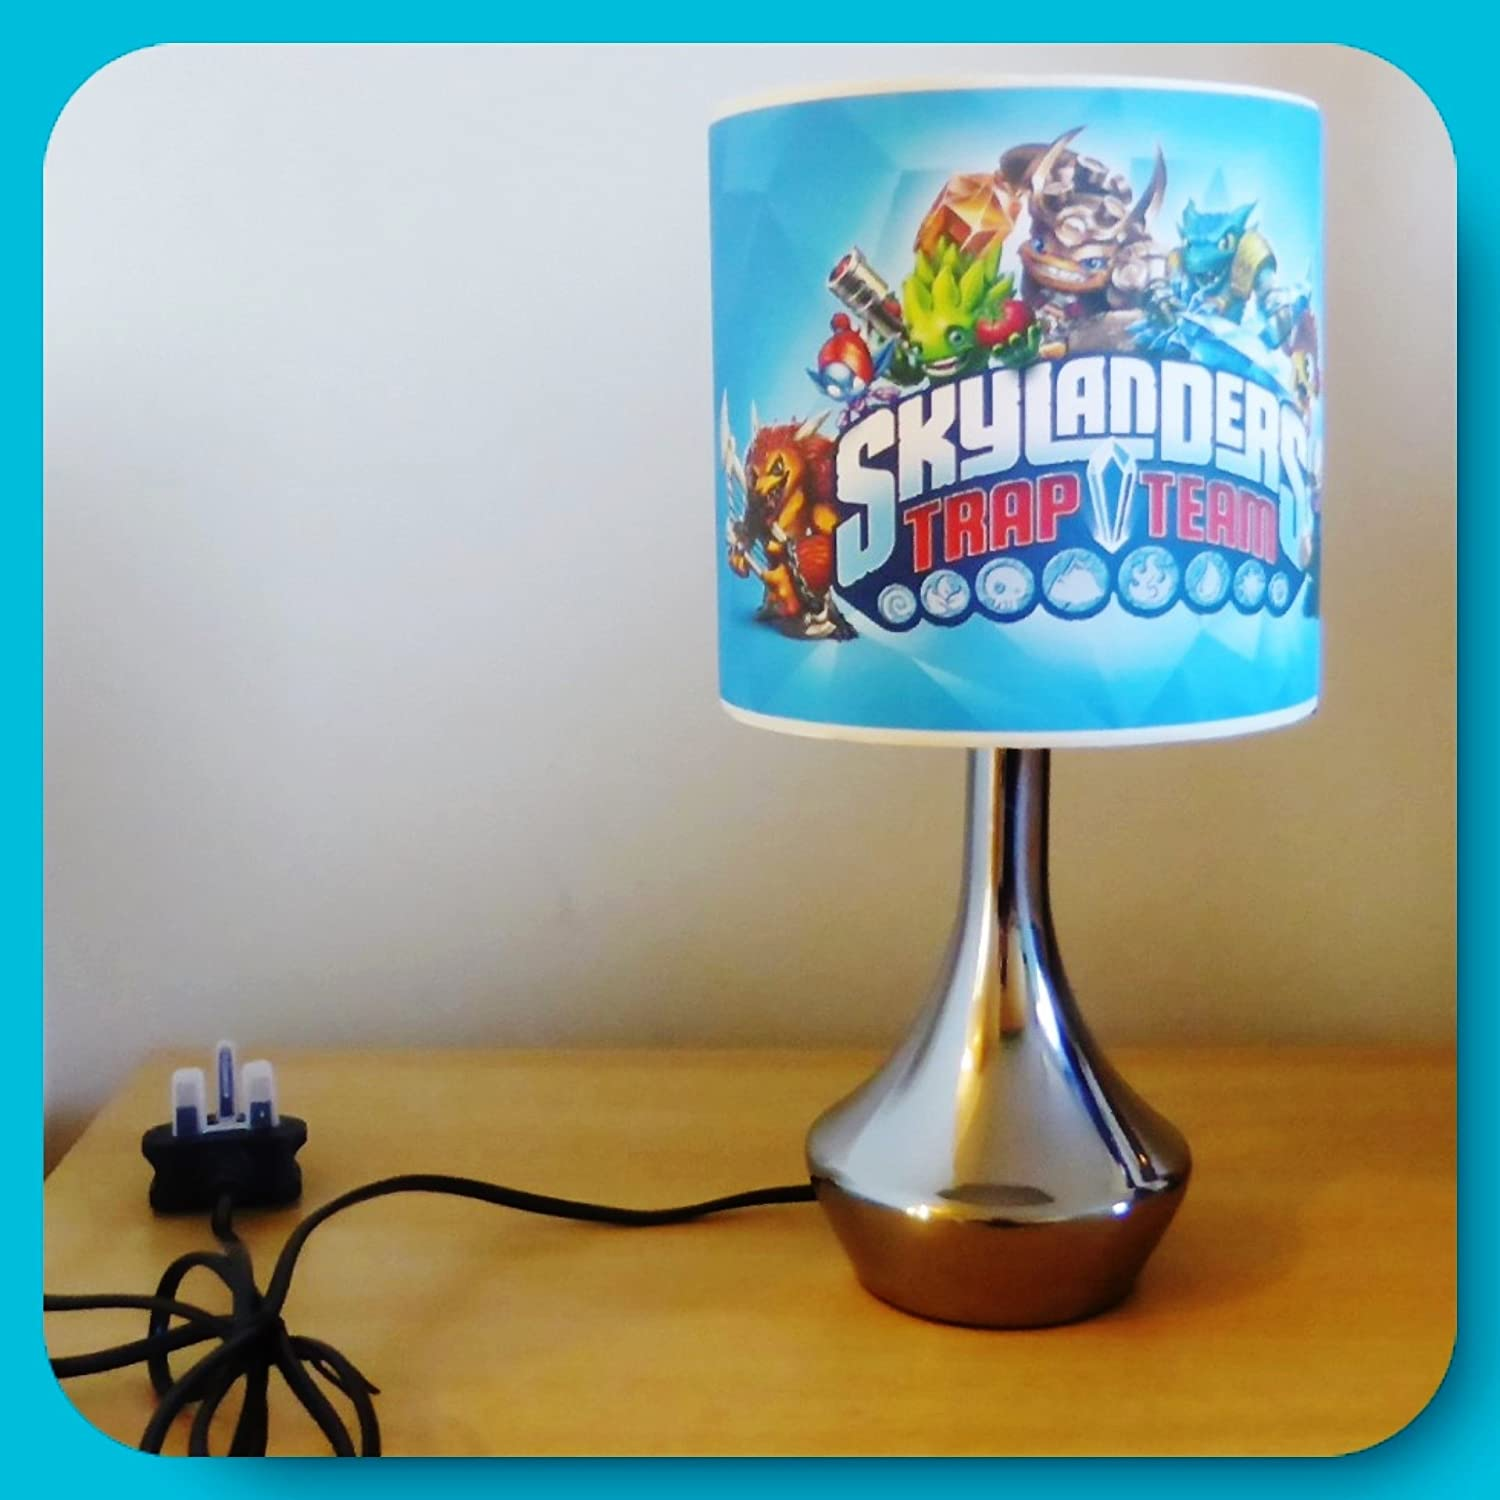 SKYLANDERS TRAP TEAM   BEDSIDE LAMP   BOYS BEDROOM LIGHT / LAMP SHADE:  Amazon.co.uk: Lighting